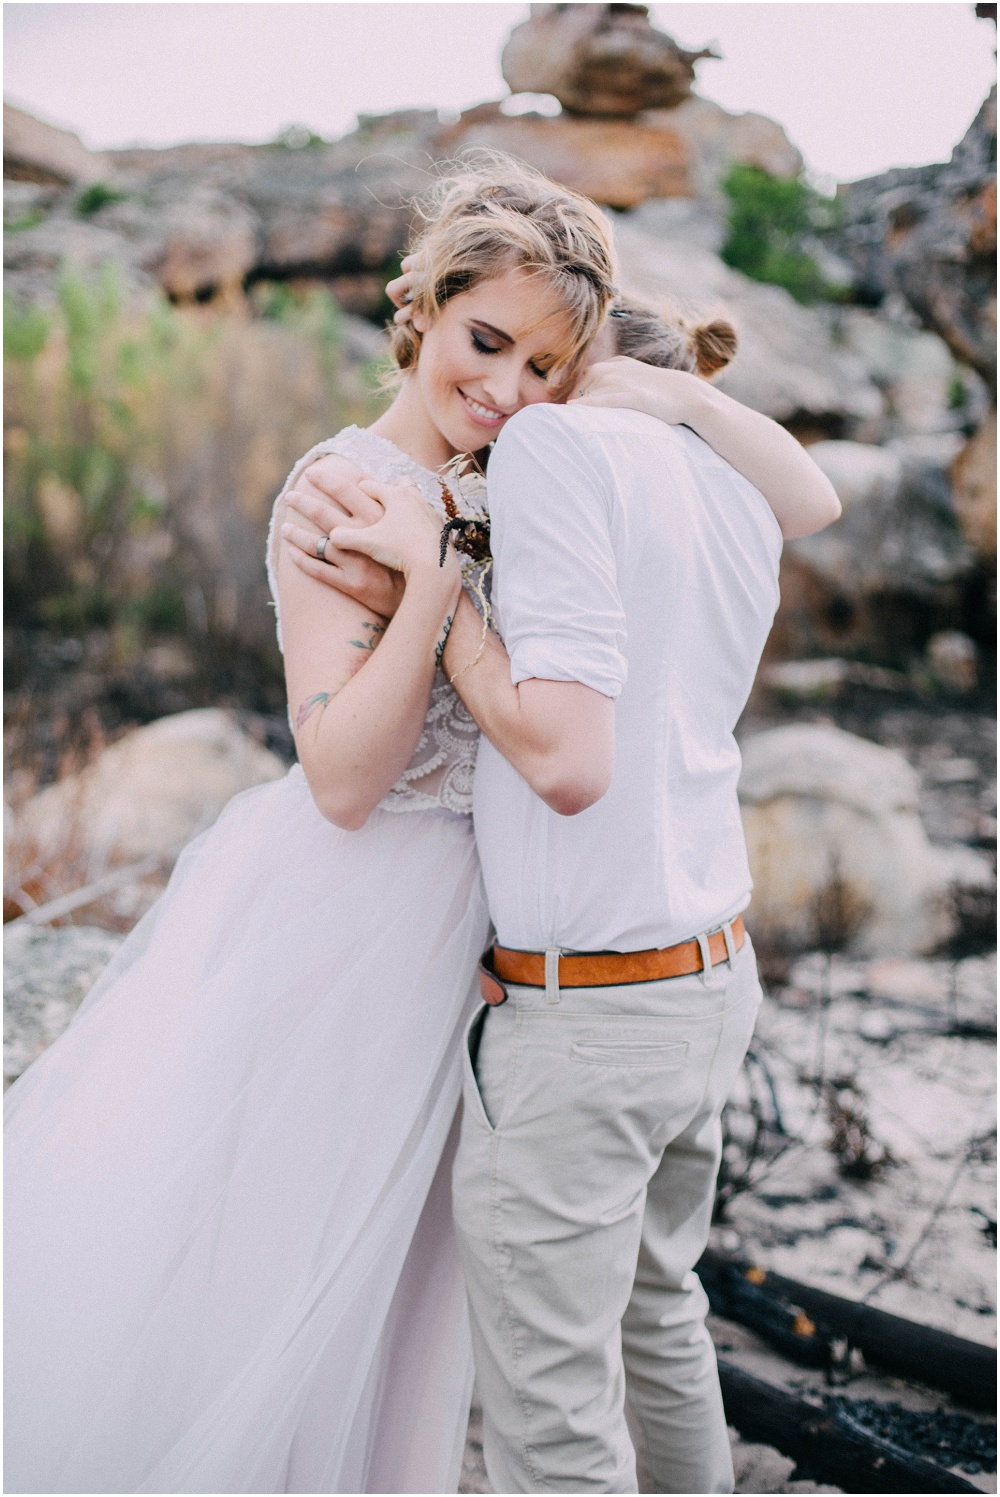 Ronel Kruger Cape Town Wedding and Lifestyle Photographer_4034.jpg